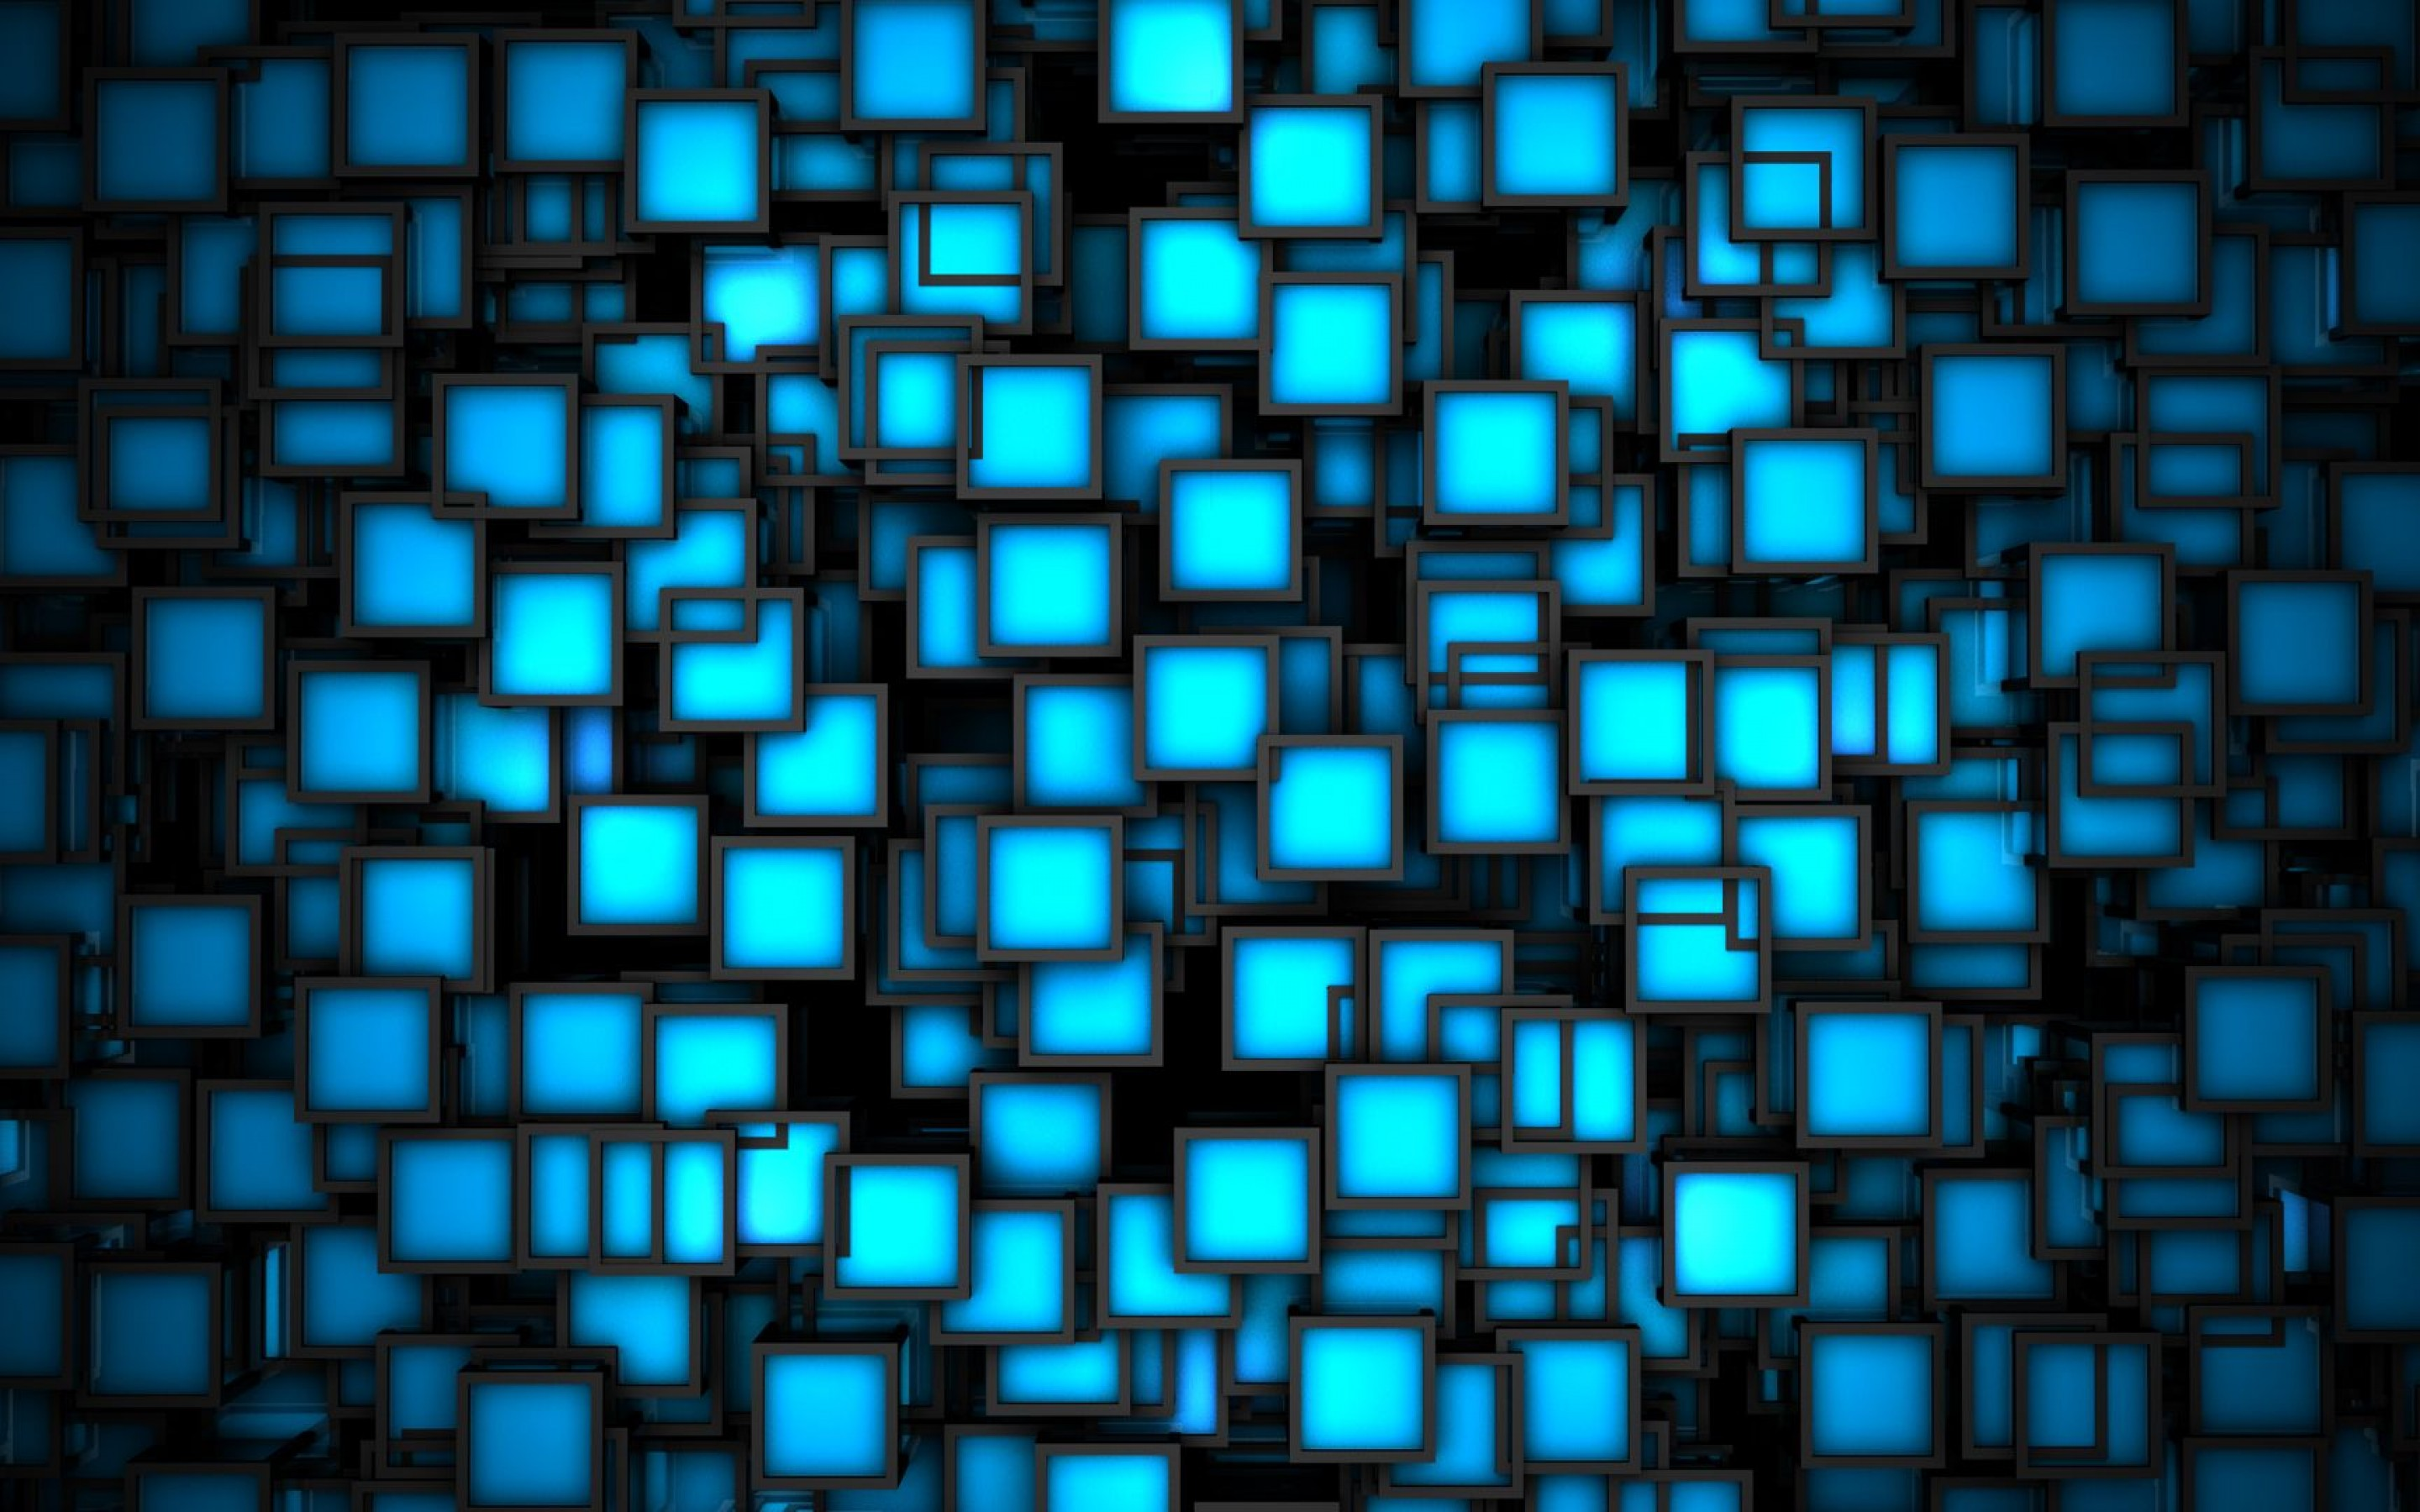 Blue Geometric Wallpaper 18